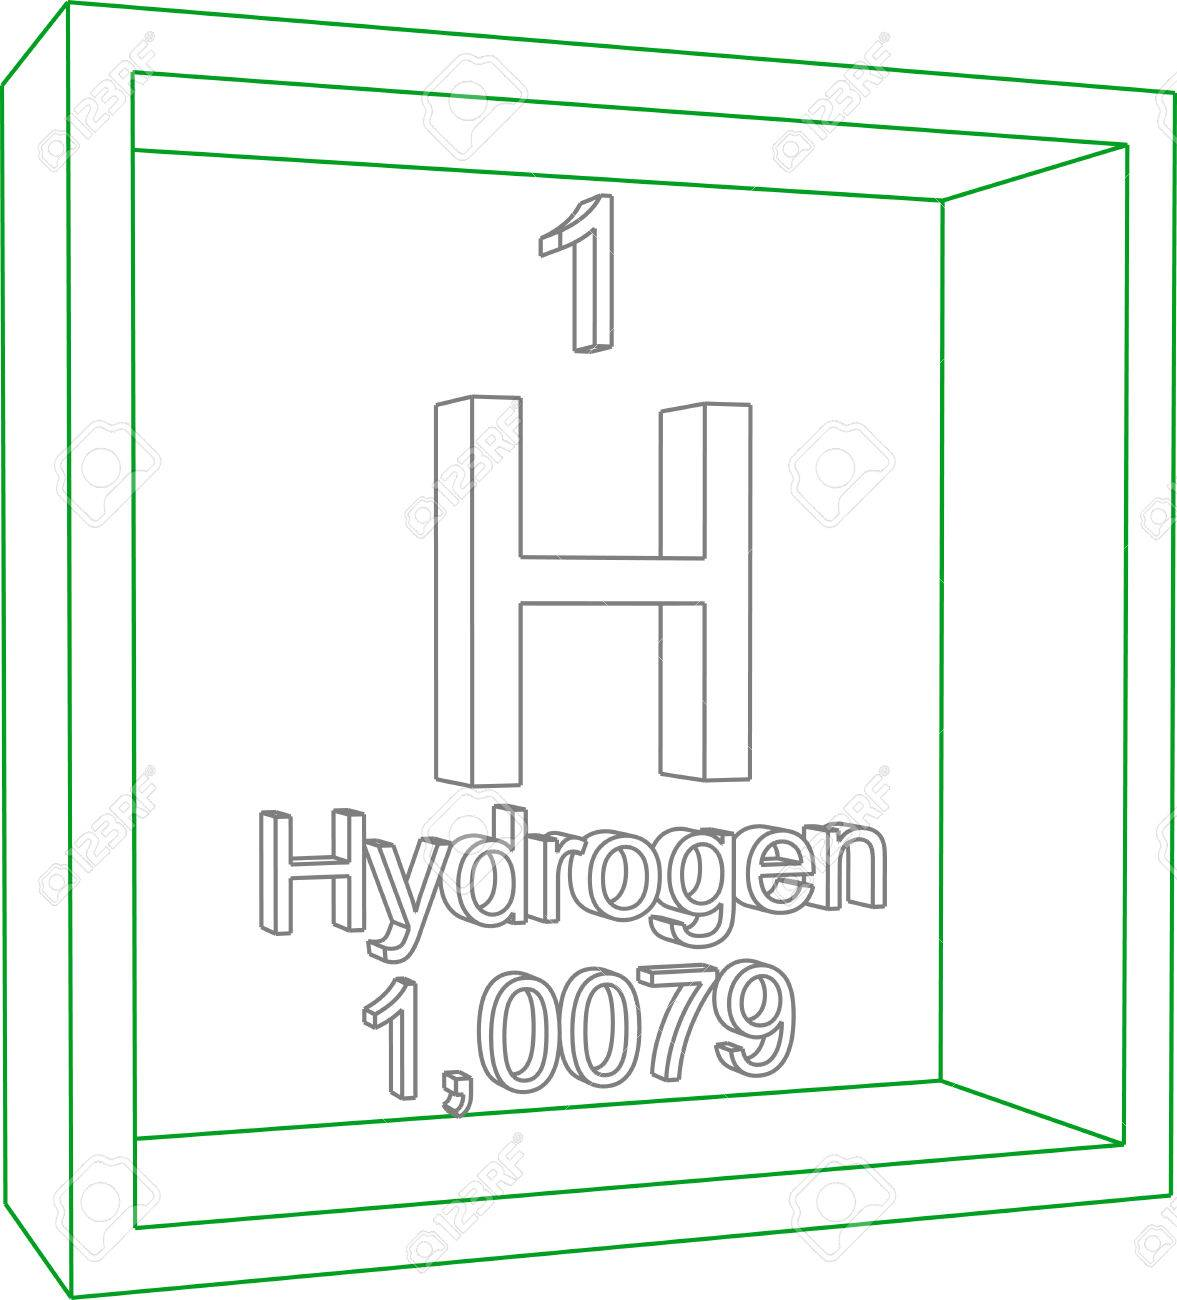 Periodic table of elements hydrogen choice image periodic table periodic table of elements hydrogen royalty free cliparts periodic table of elements hydrogen stock vector 57952129 gamestrikefo Choice Image